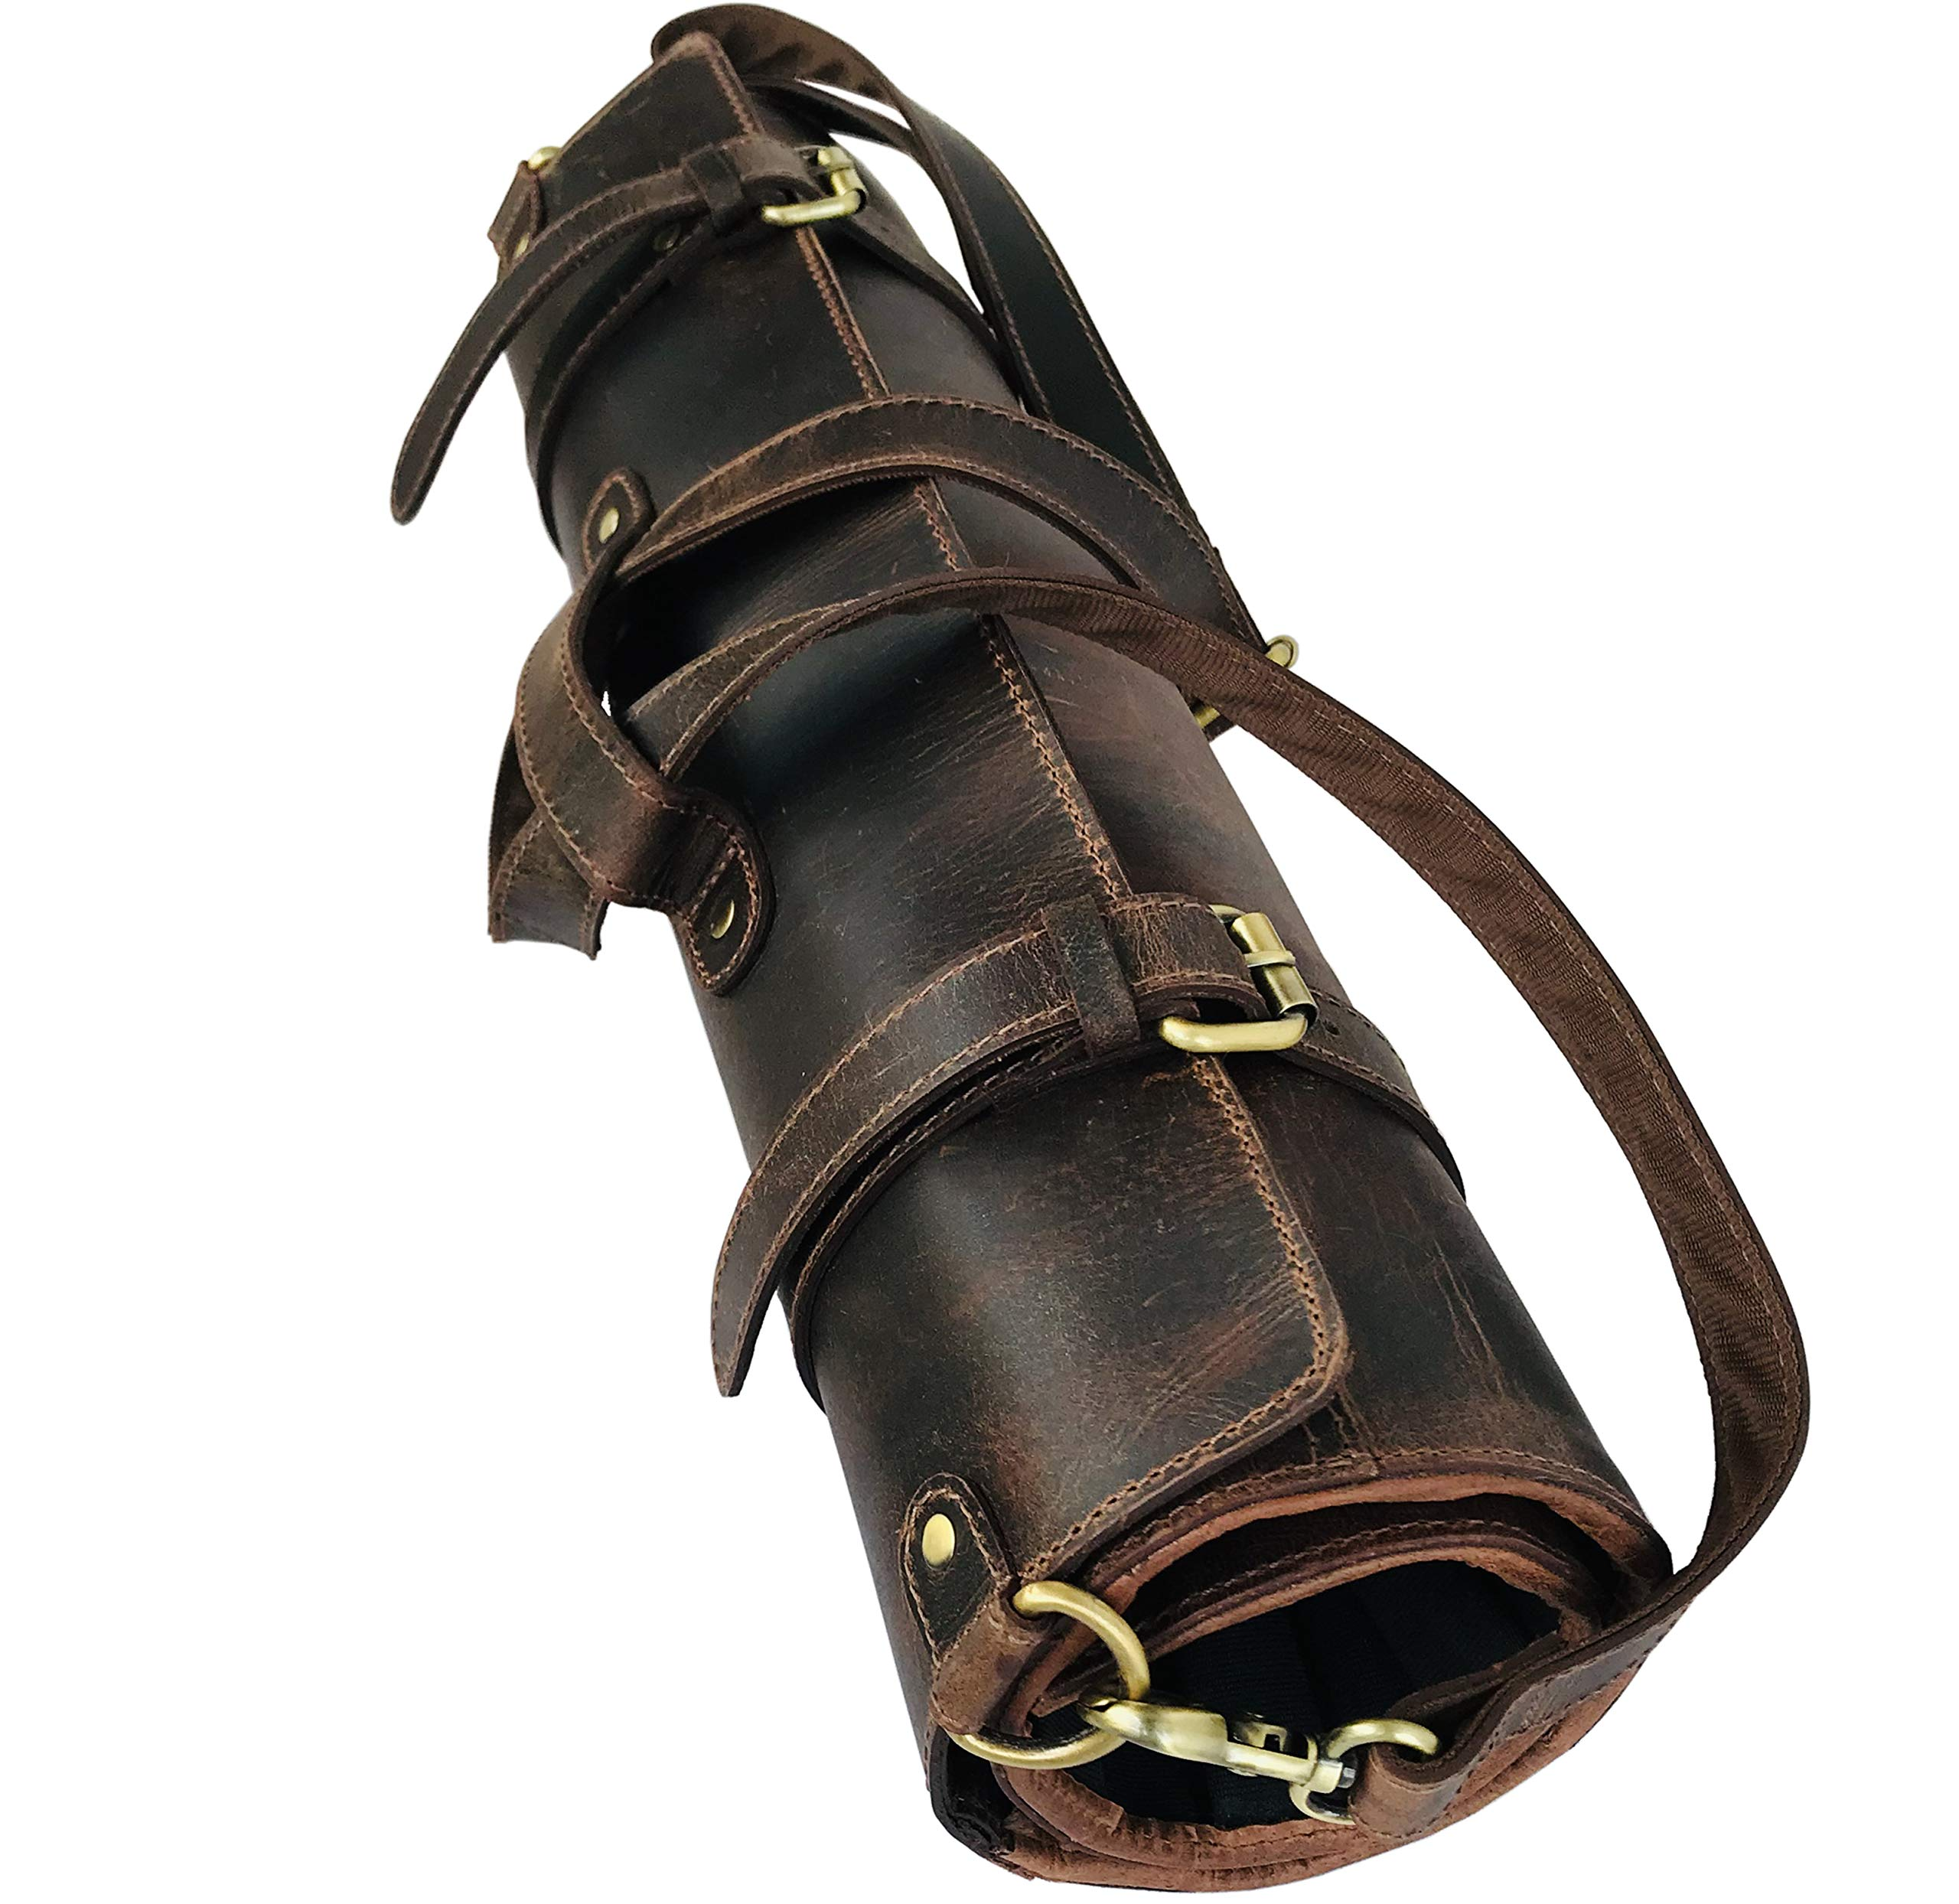 Leather Knife Roll Storage Bag | Elastic and Expandable 10 Pockets | Adjustable/Detachable Shoulder Strap | Travel-Friendly Chef Knife Case Roll by Aislinn Leather